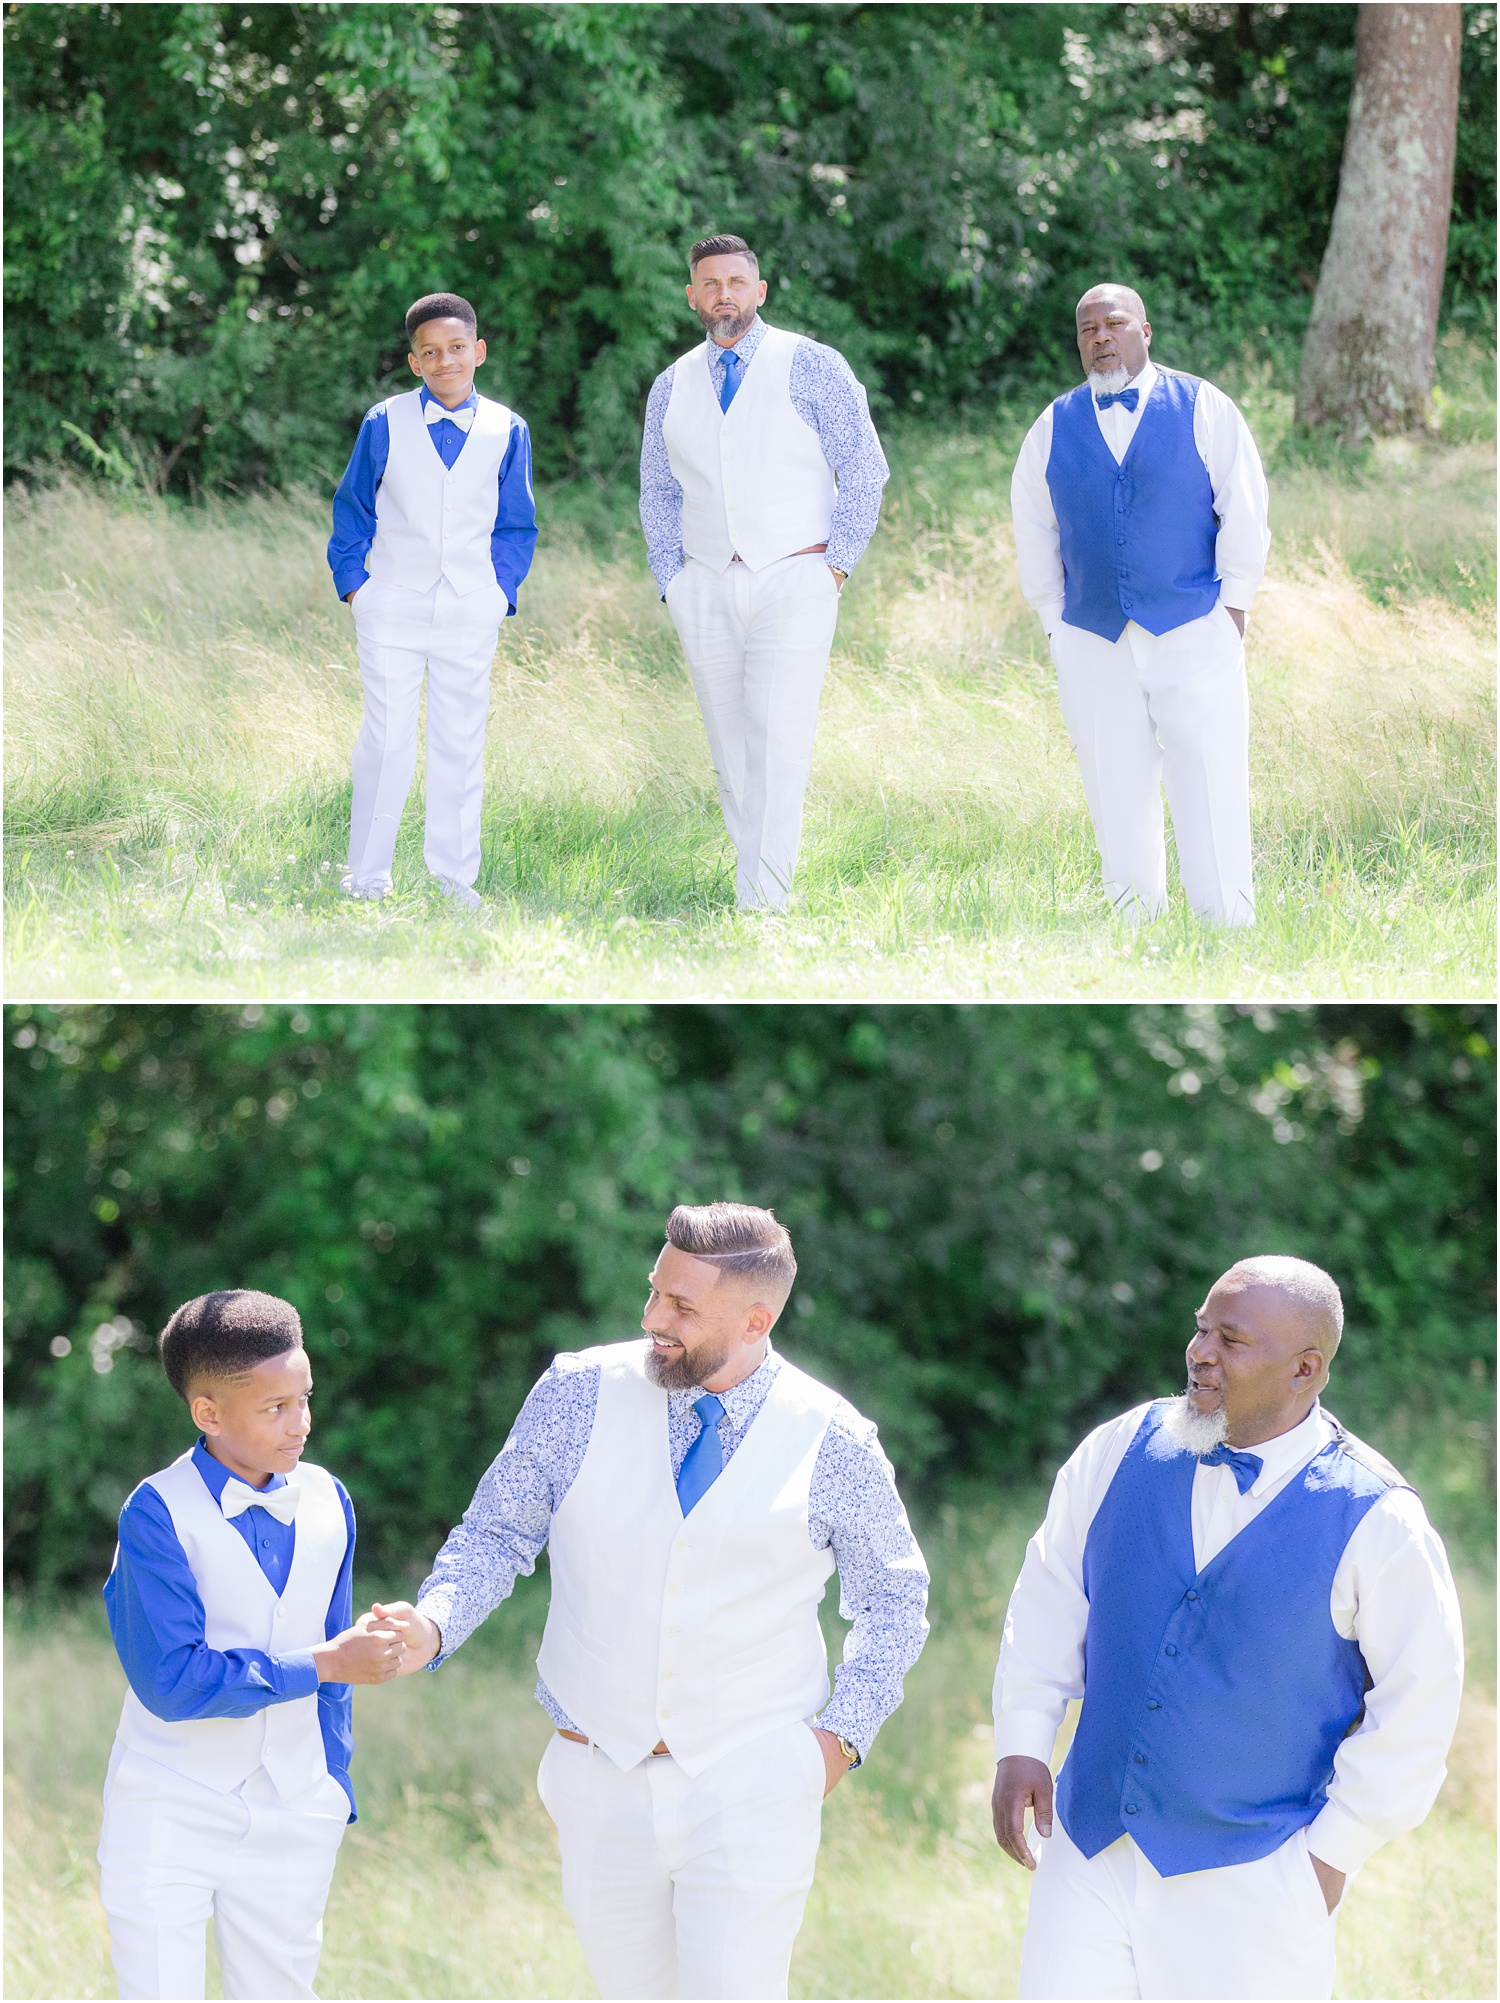 Groom and groomsmen before a wedding in Chesapeake City, MD.